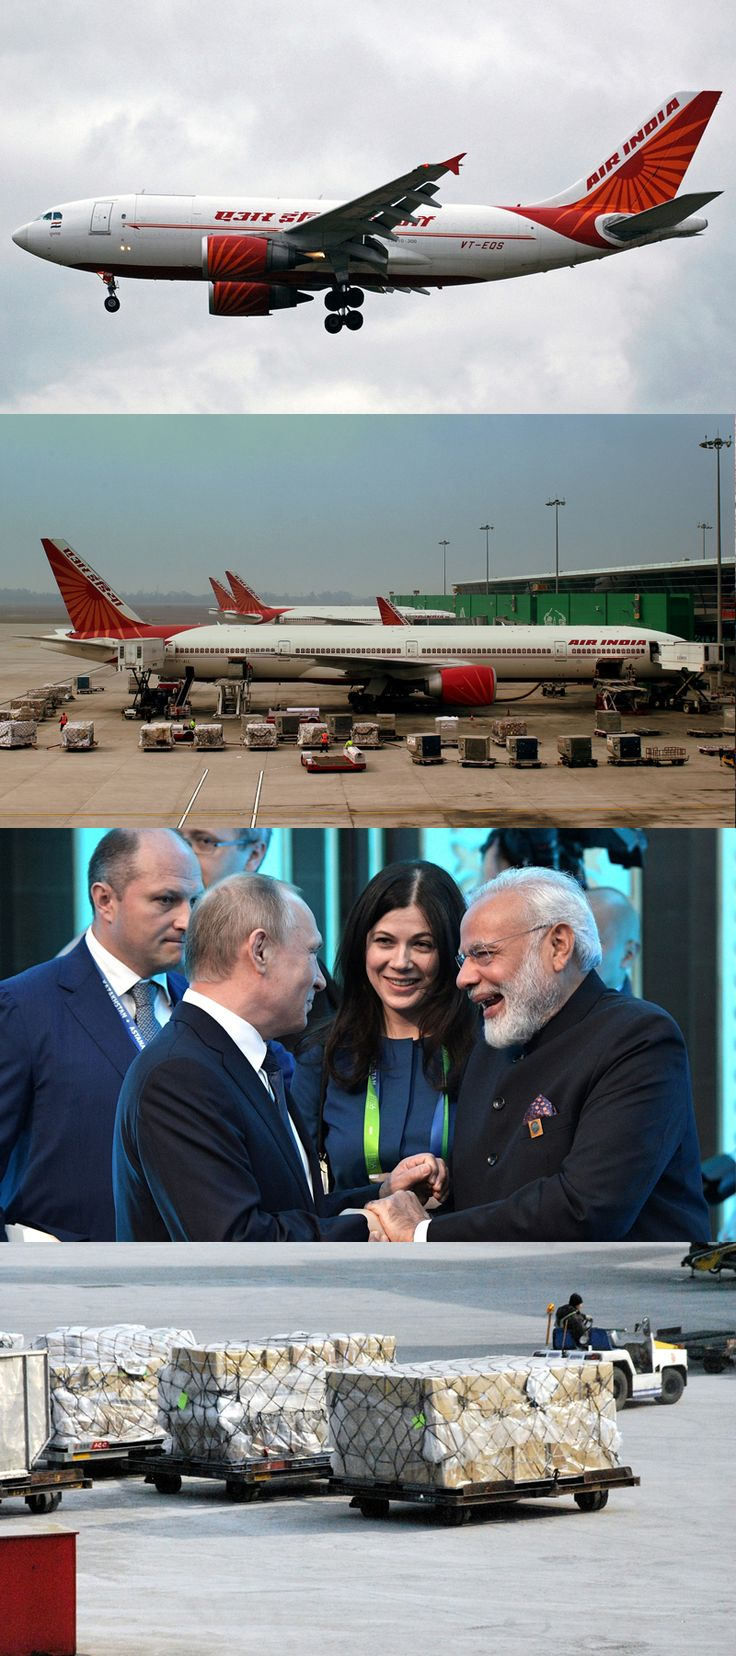 #Air_India Leads its Country's #Cargo_Transportation read more: https://www.parcelstoindia.co.uk/blog/air-india-leads-countrys-cargo-transportation/